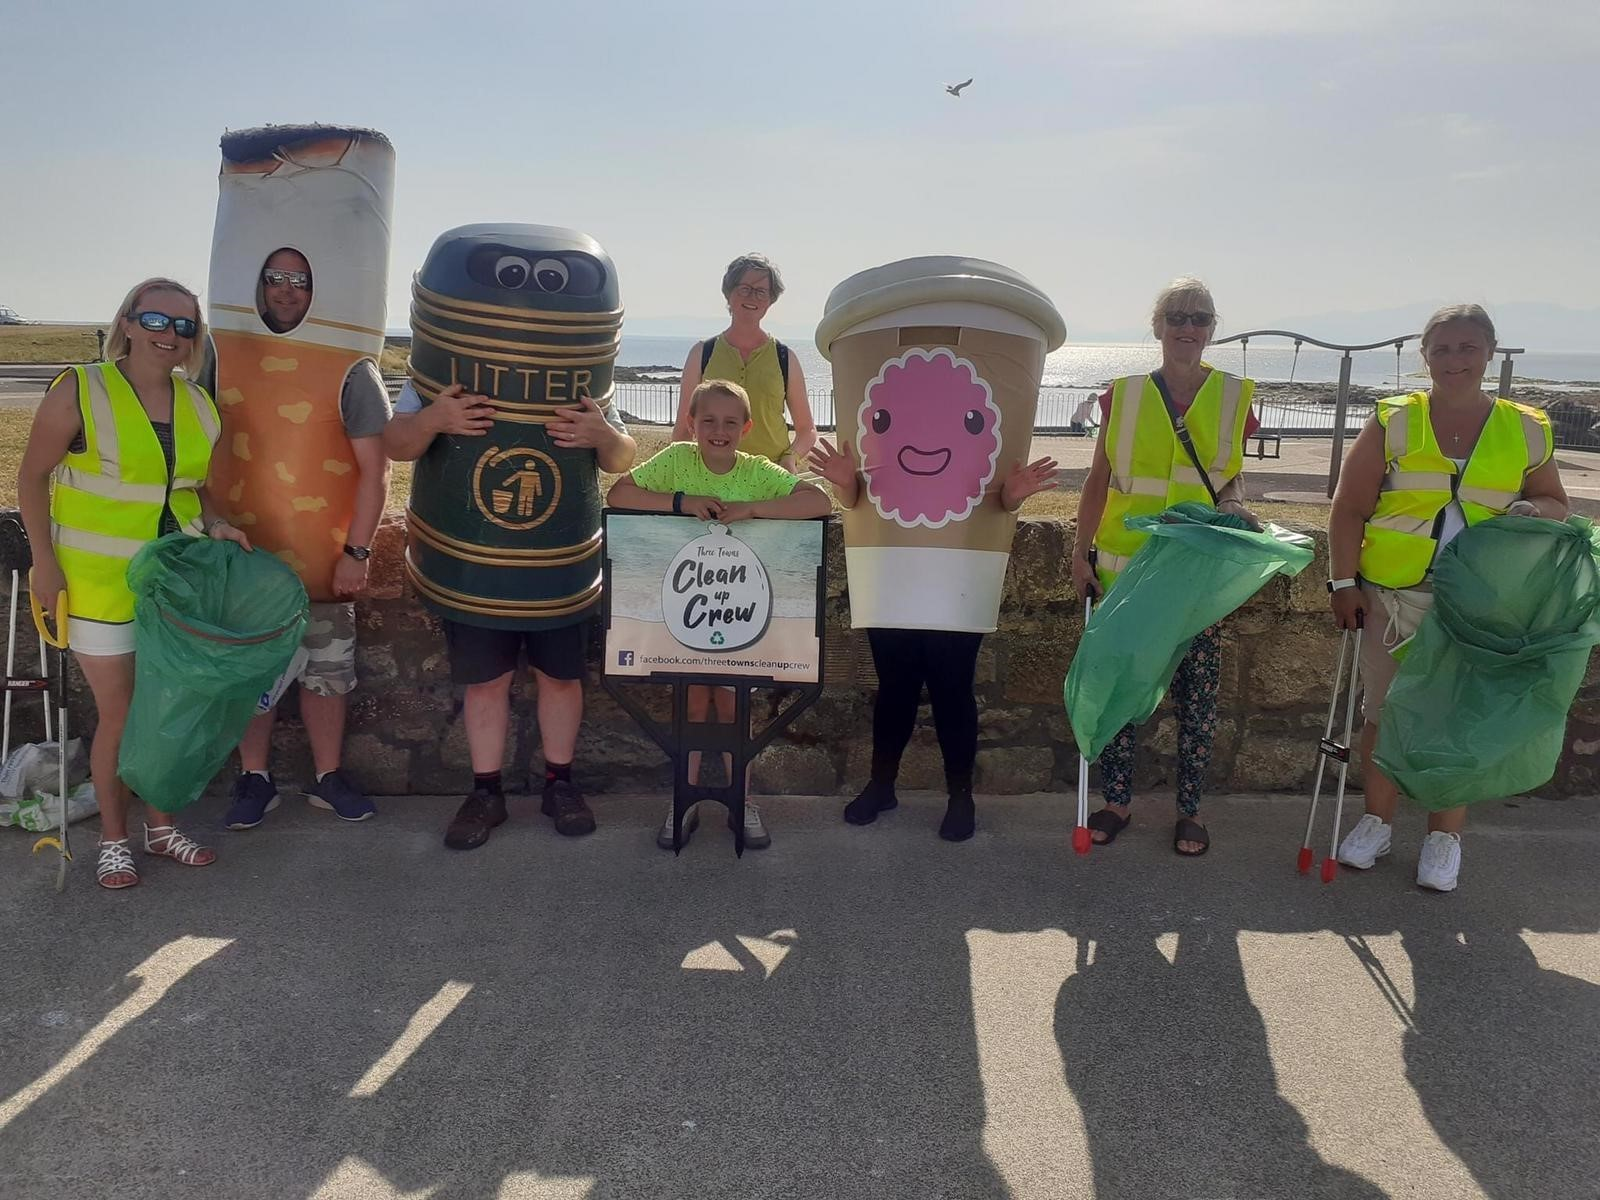 Three towns clean up crew don fancy dress to send litter message